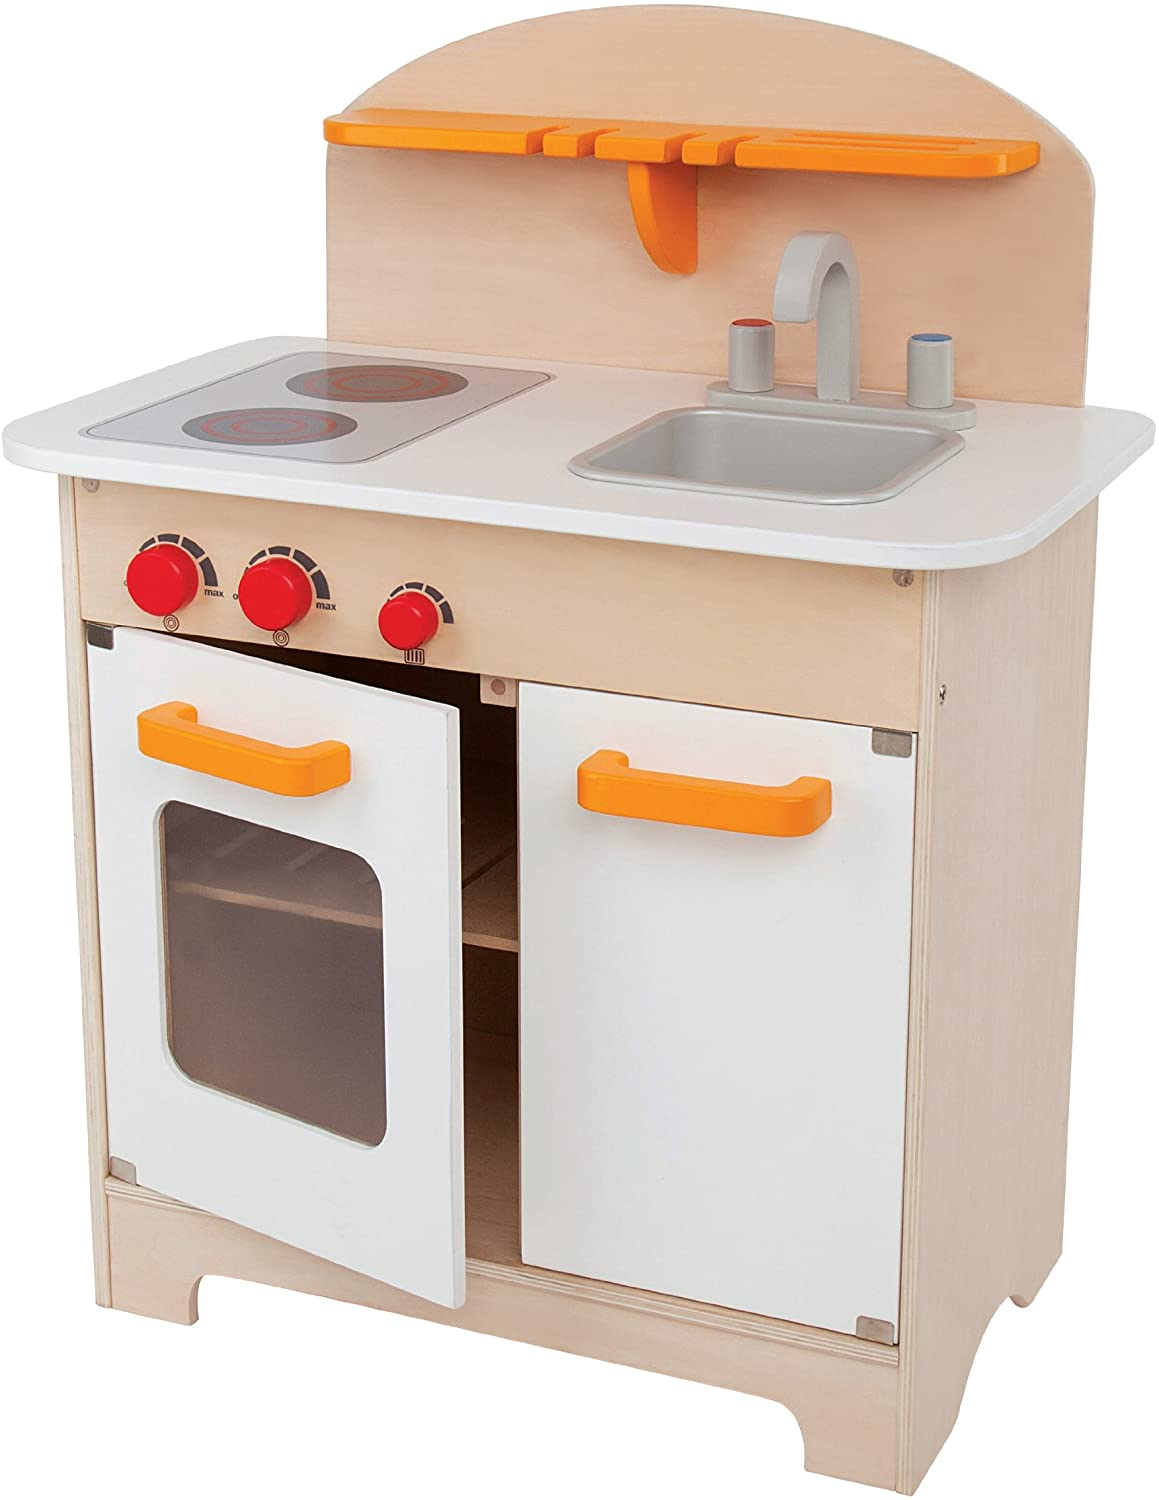 Kitchen Play Set by Hape